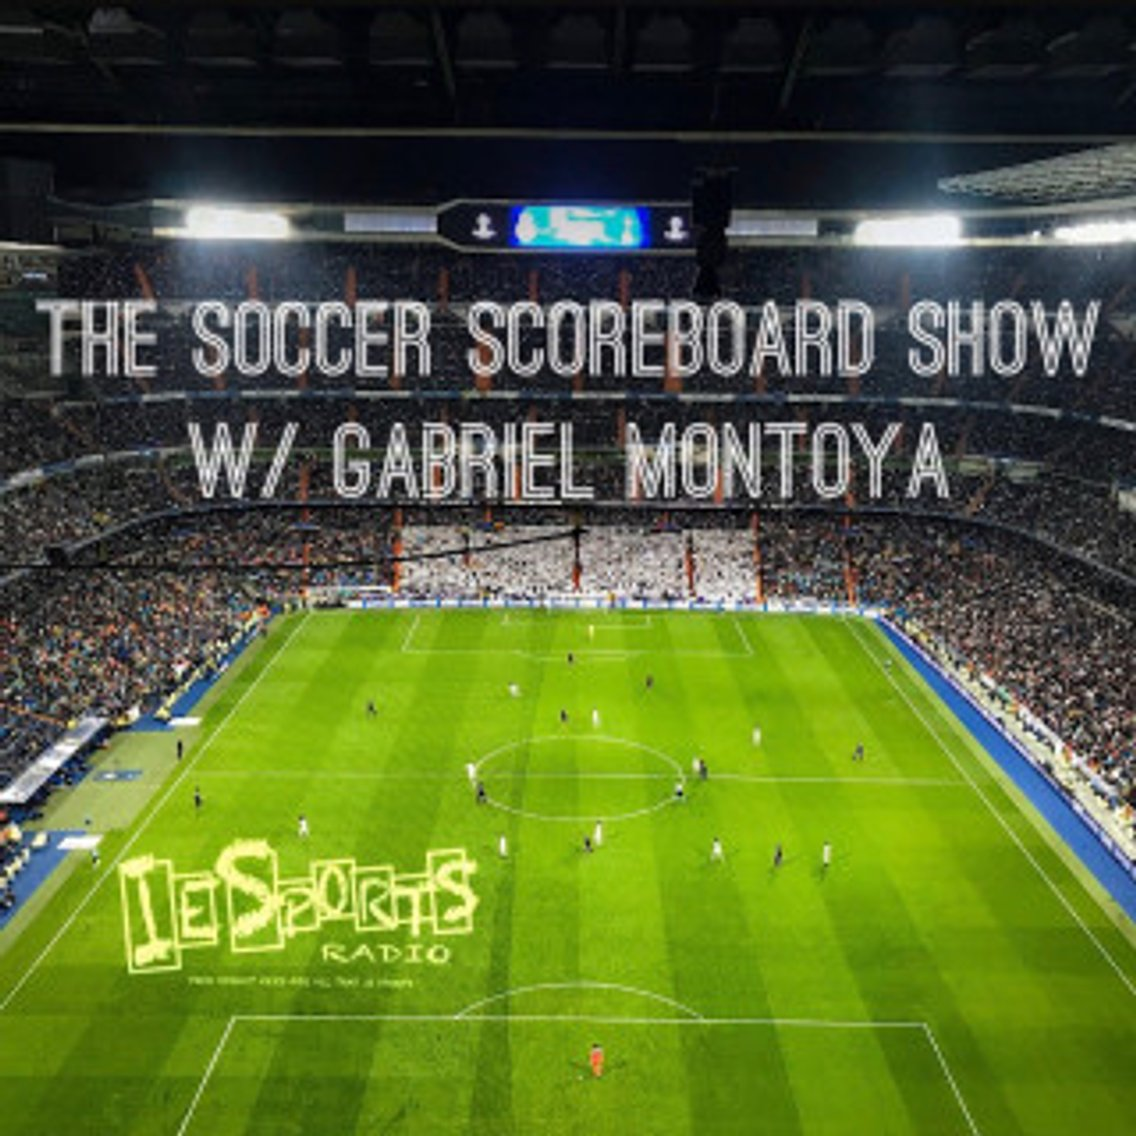 The Soccer Scoreboard Show - Cover Image